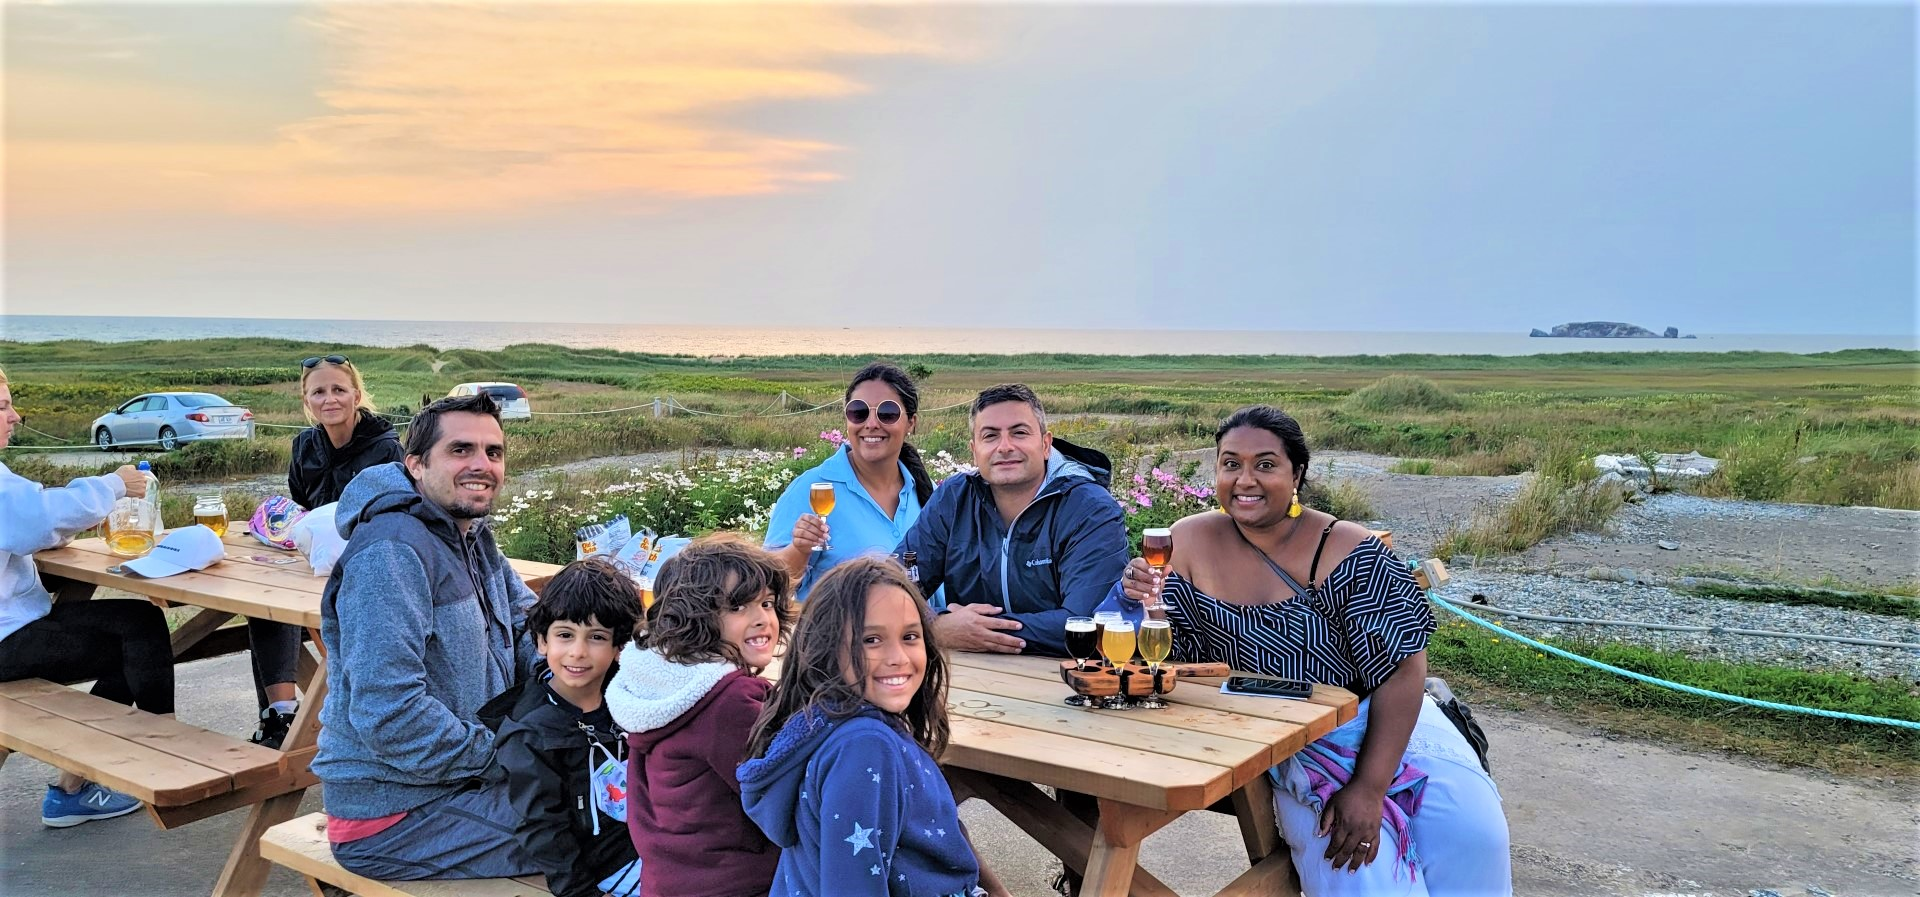 group smiling at camera during sunset at Magdalen Islands brewery